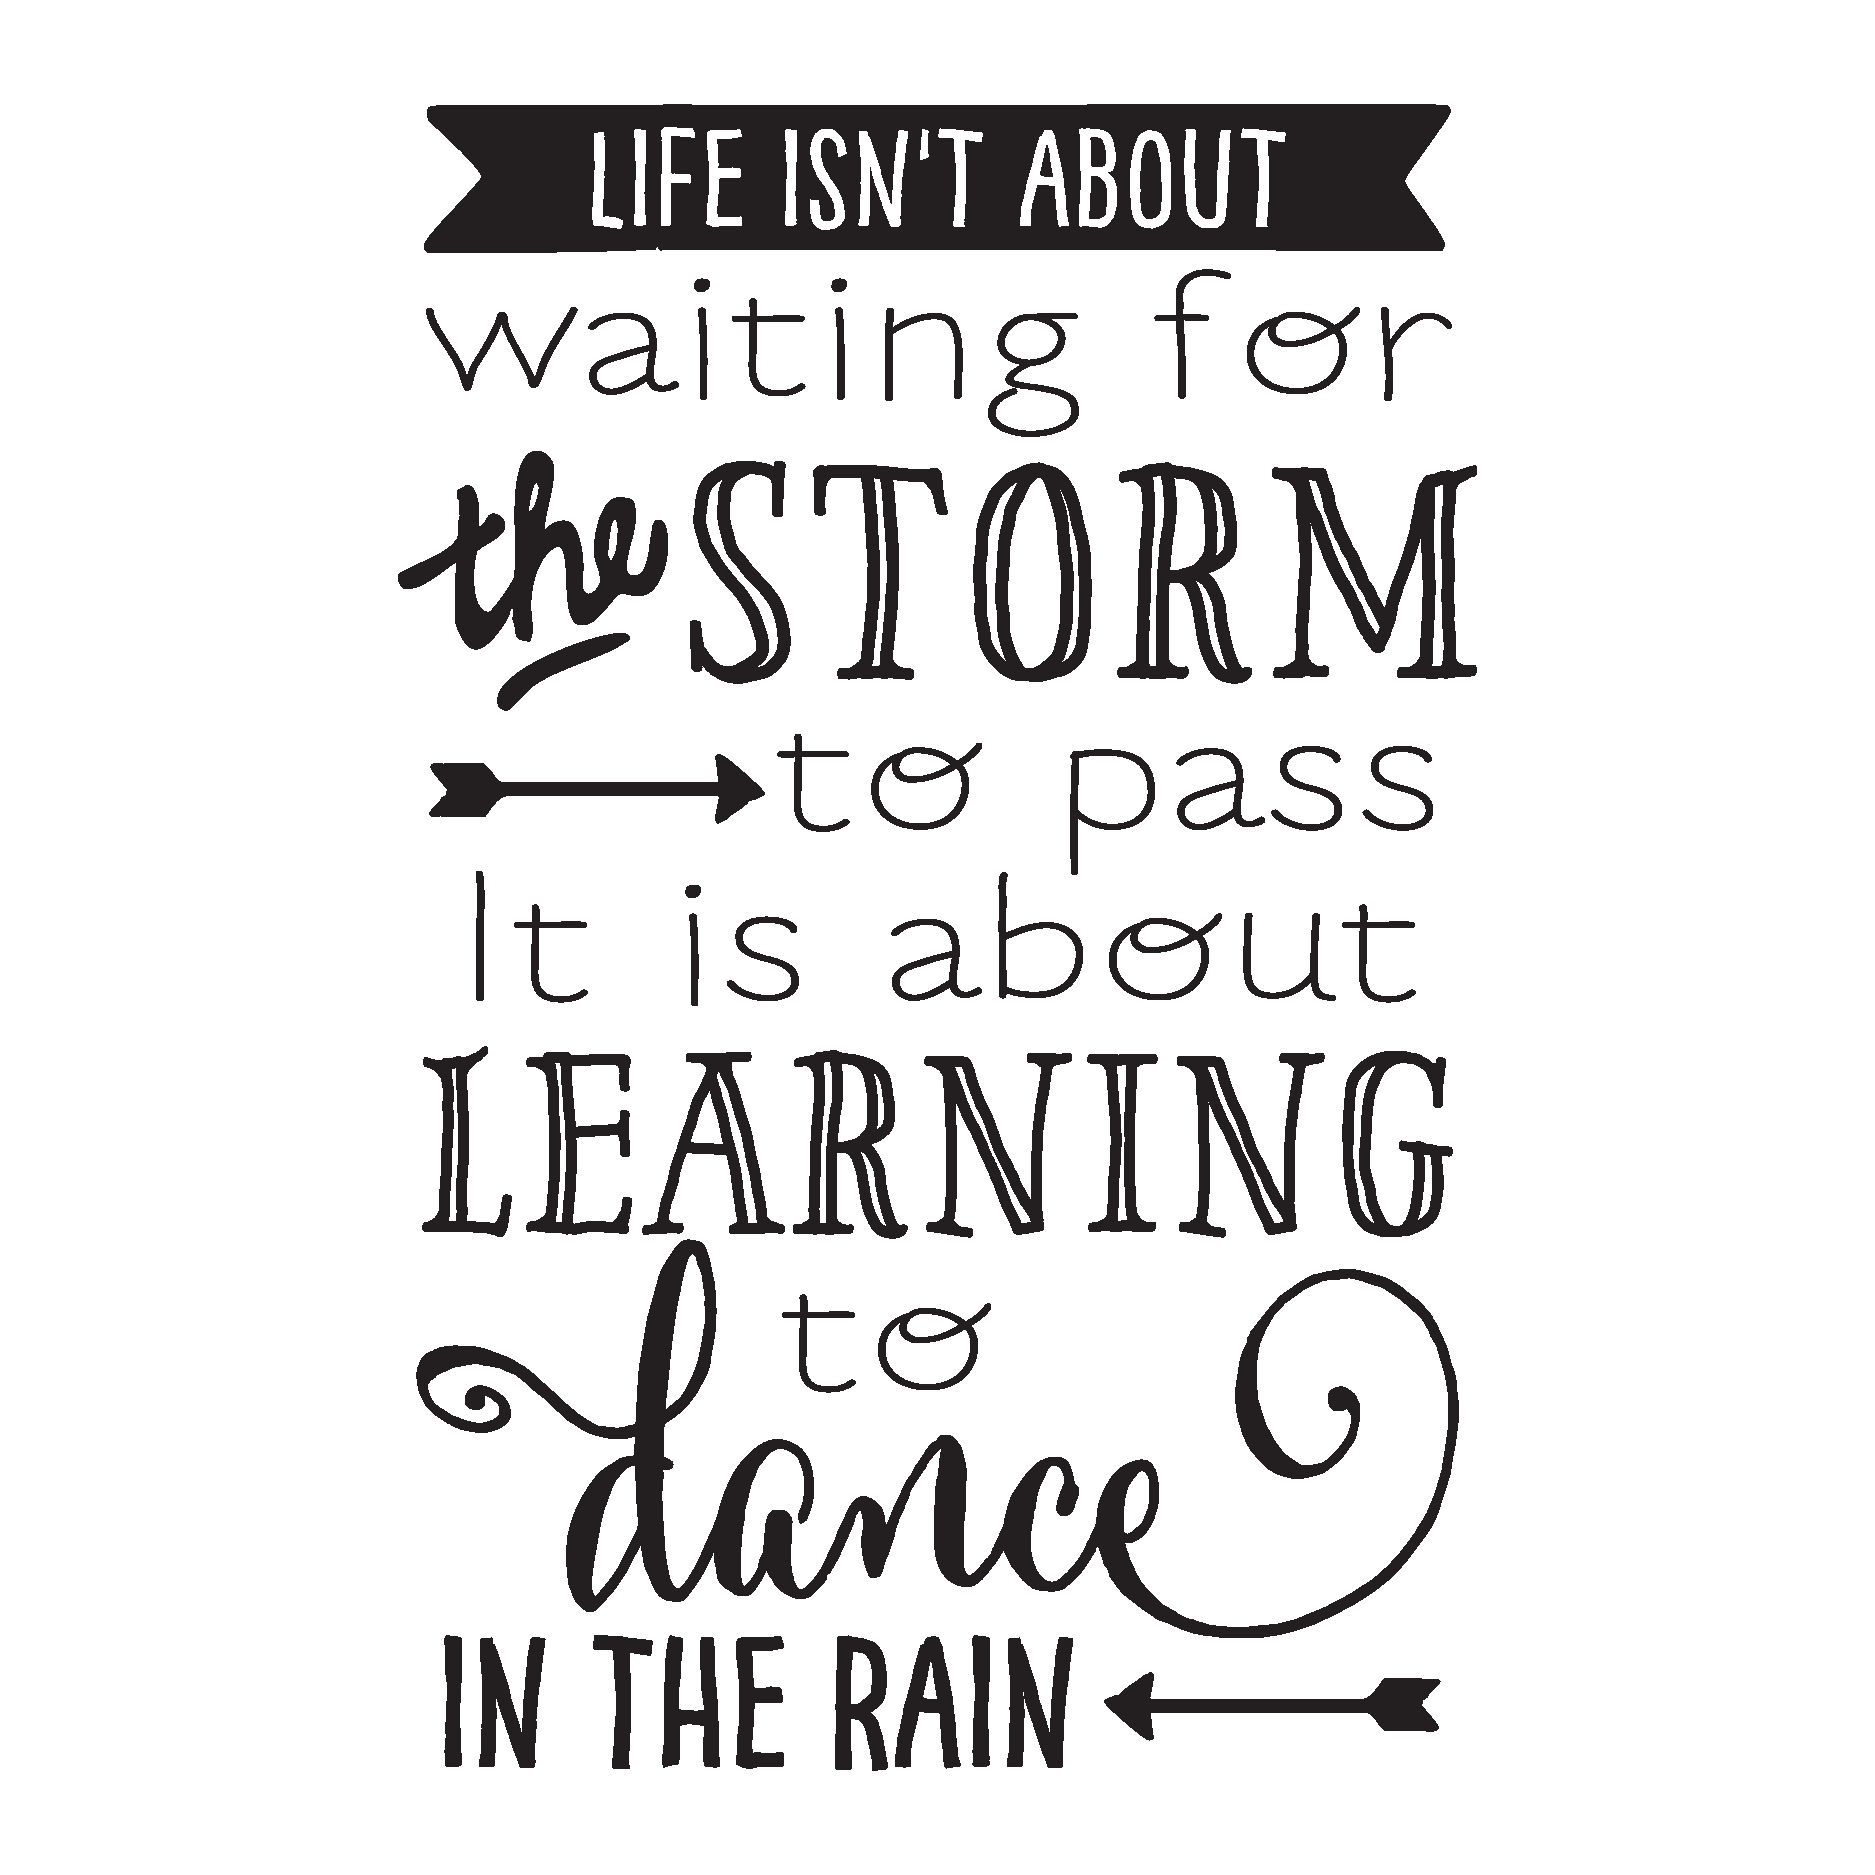 Life Isnt About Waiting For The Storm Sign